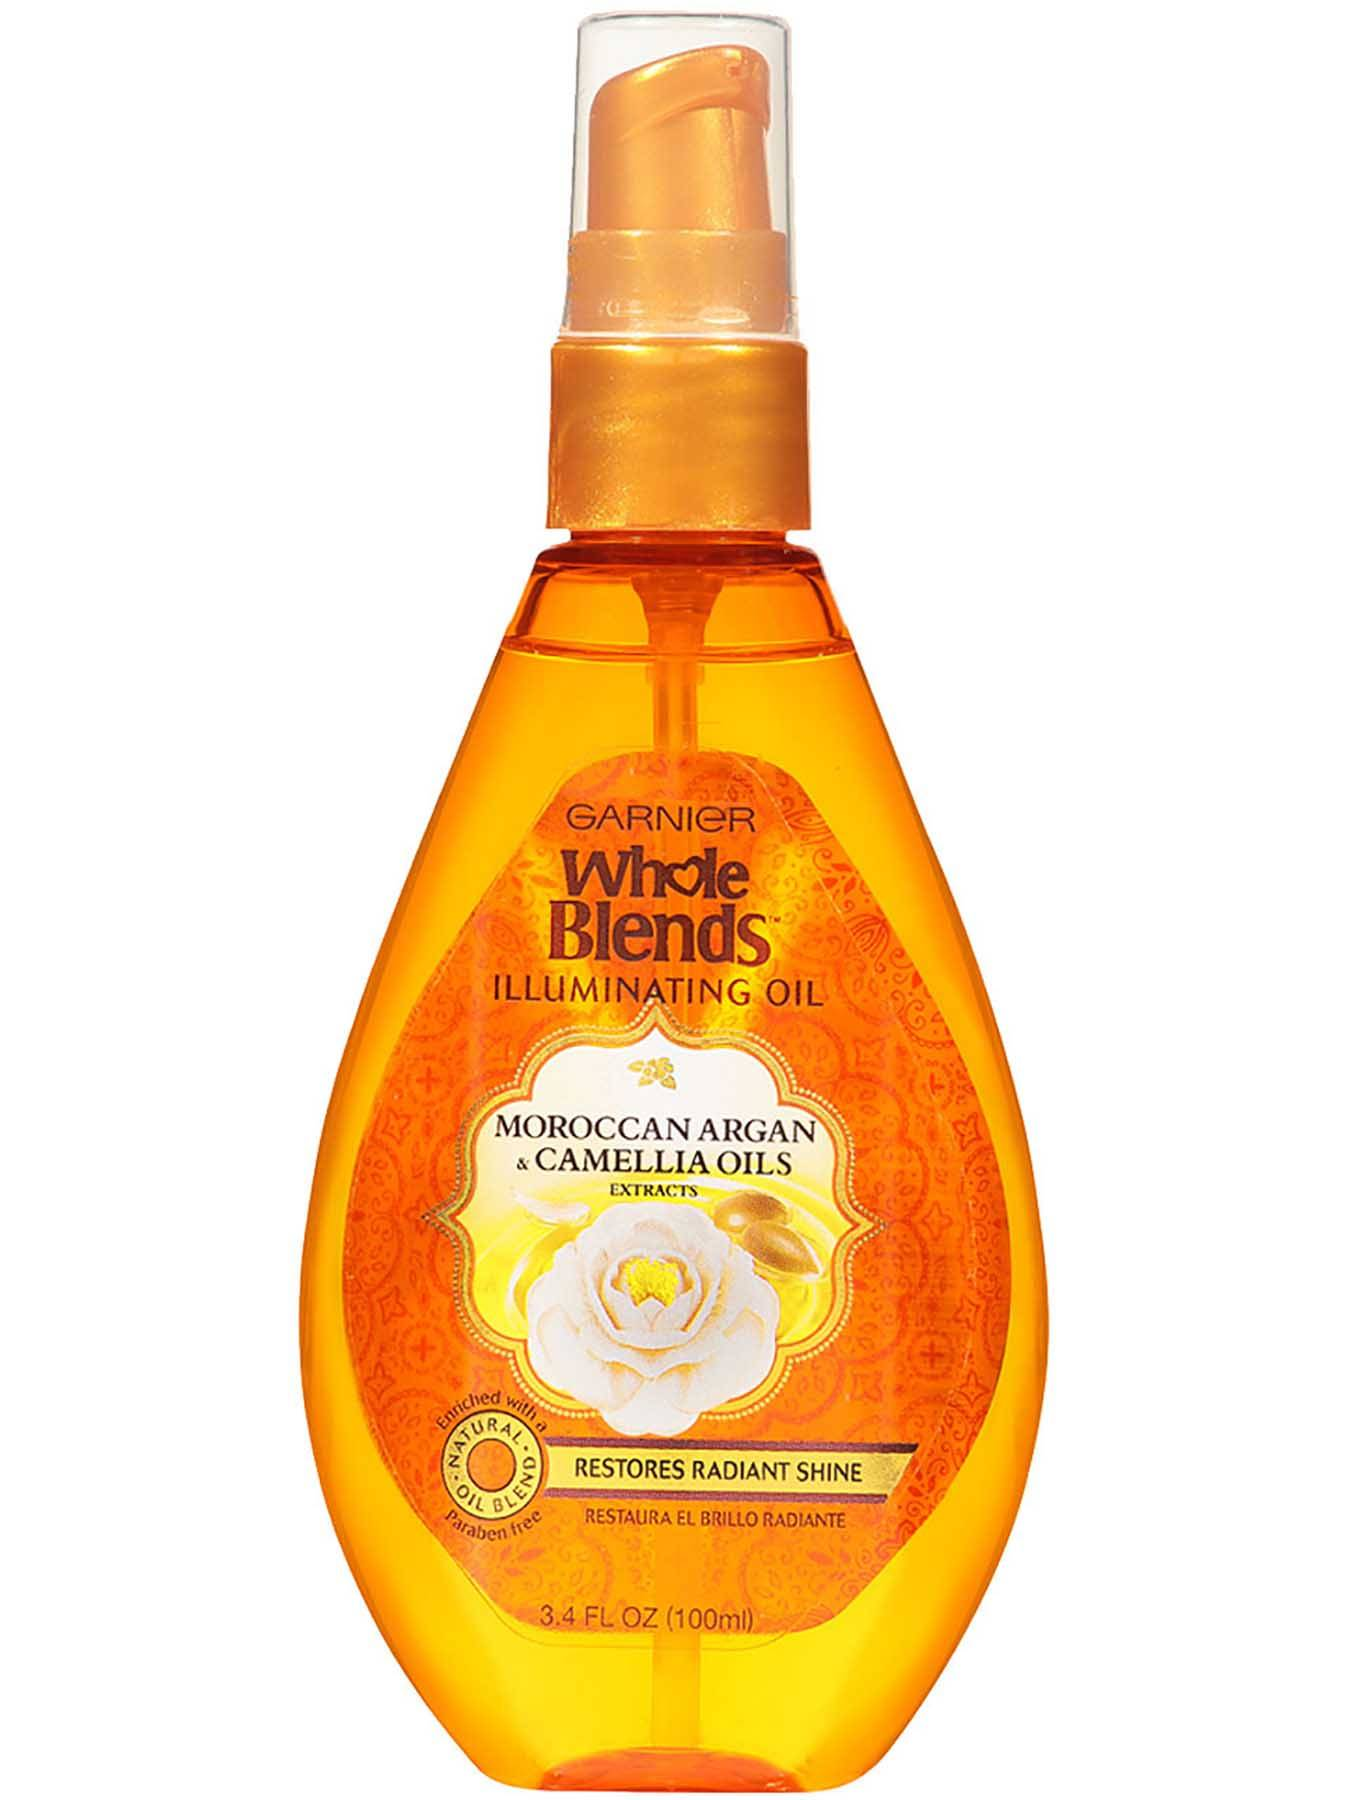 Garnier Whole Blends Illuminating Oil Moroccan Argan Camellia Oils Extracts Front Of Bottle